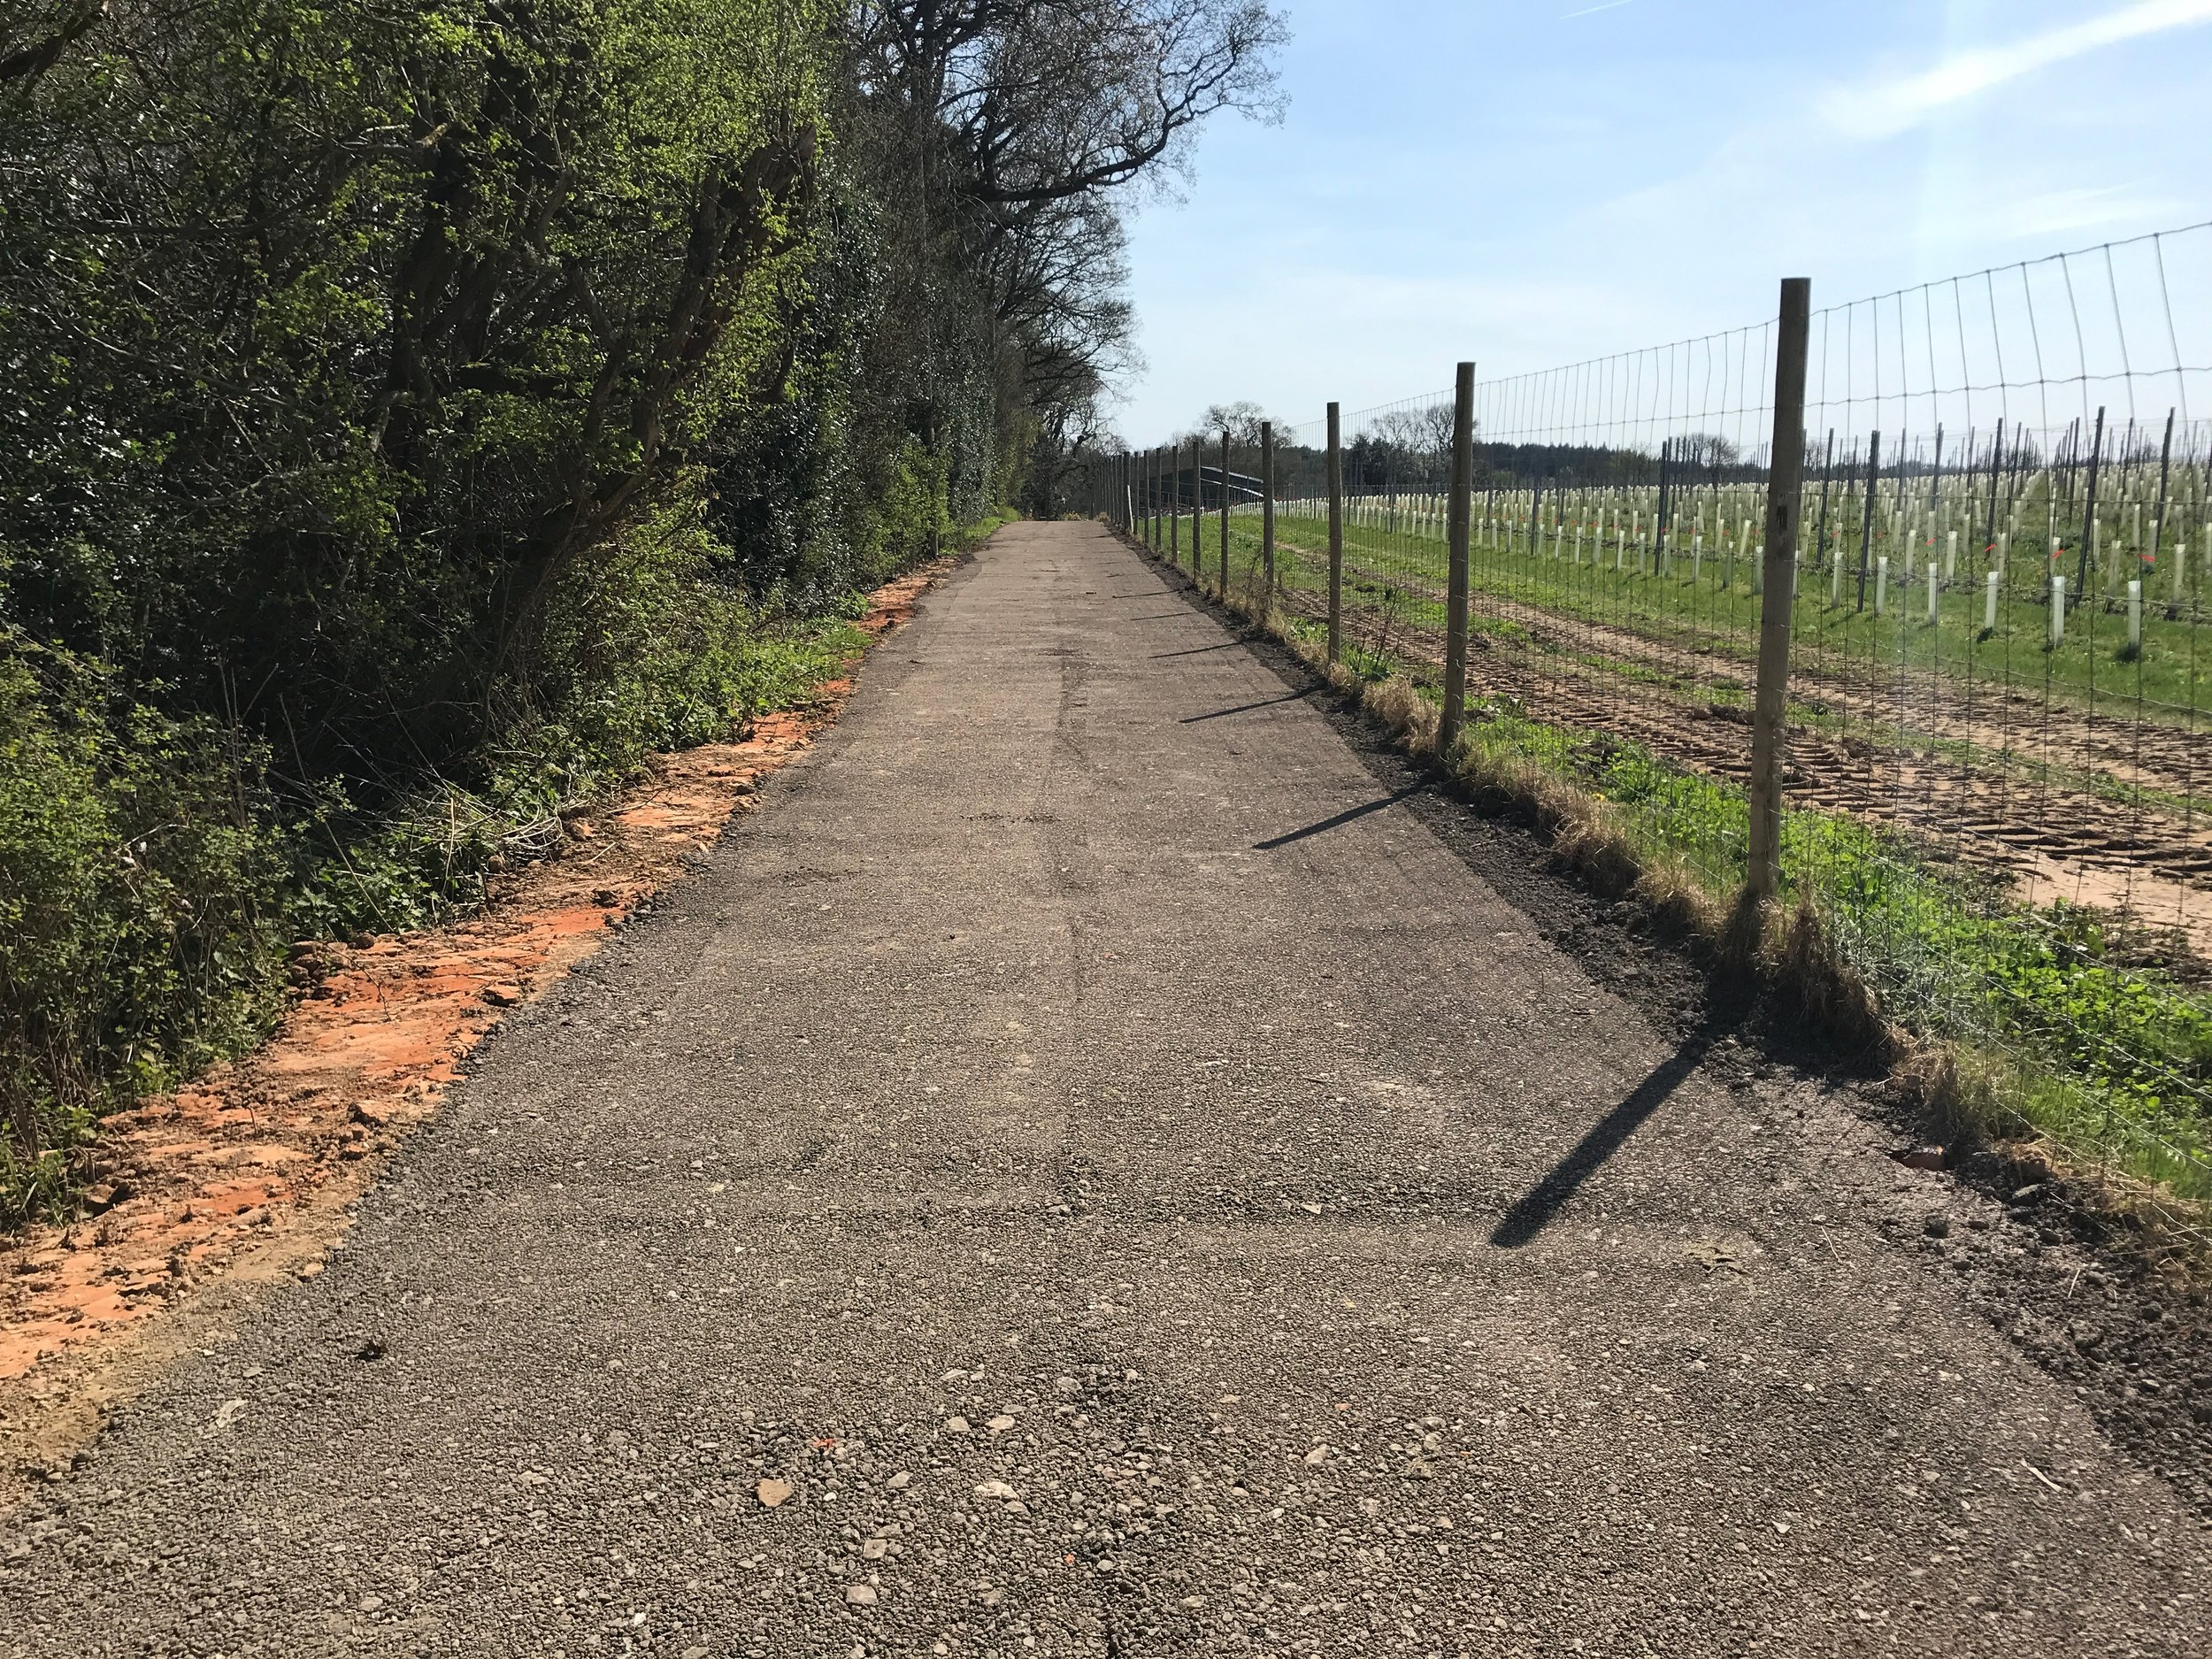 Hardcore has been laid and the new path has been completed along the side of the vineyard.